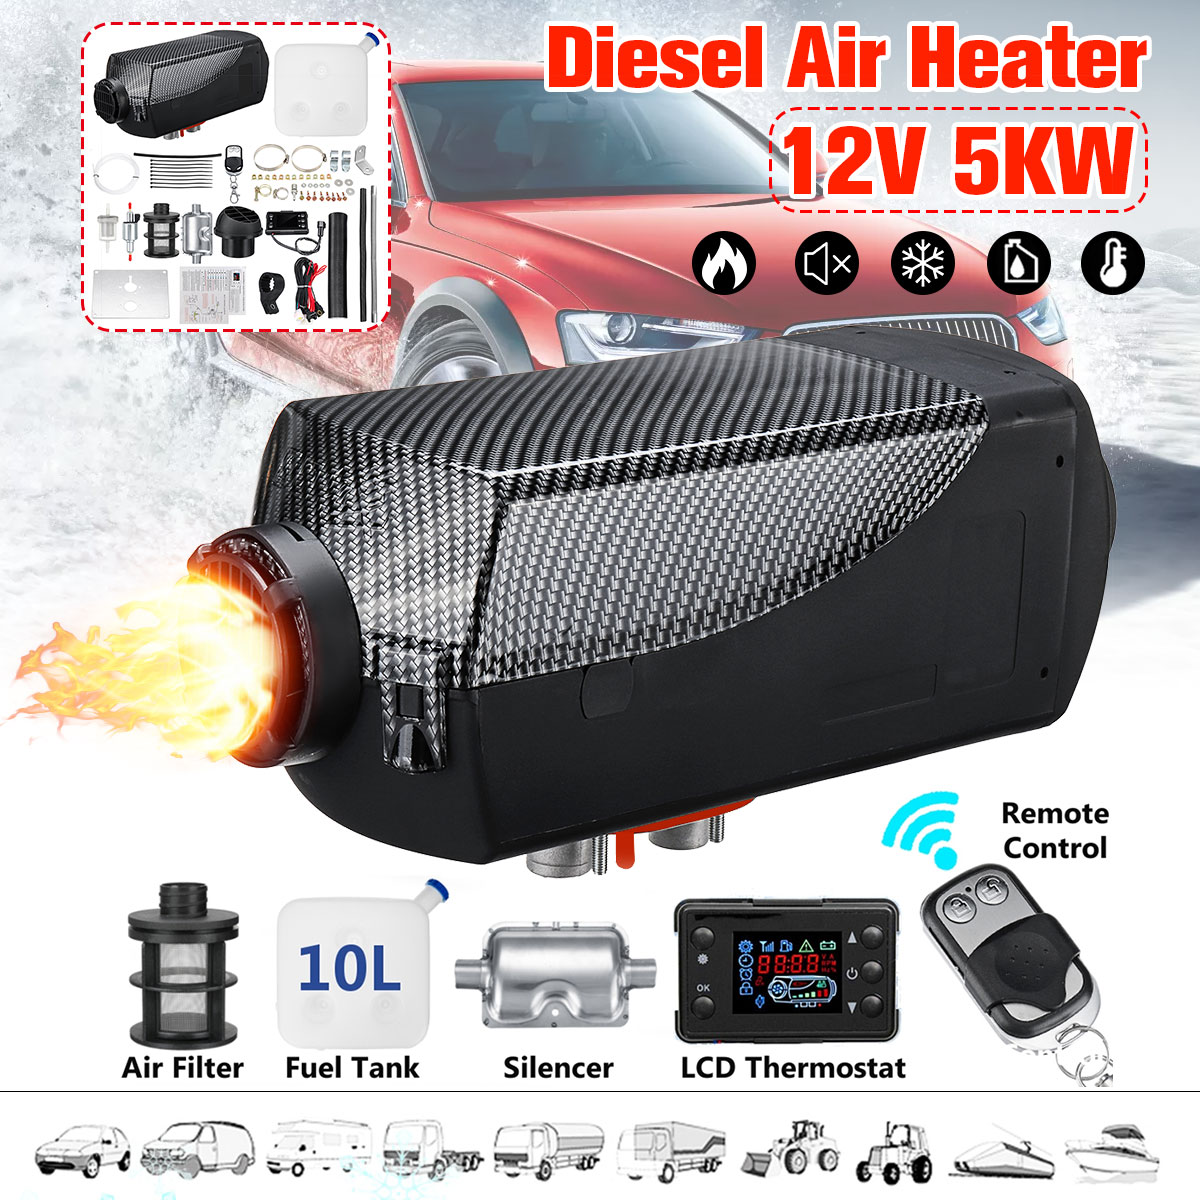 5KW 12V Diesel Air Heater LCD Remote Control Silencer For Truck Boat Car Trailer